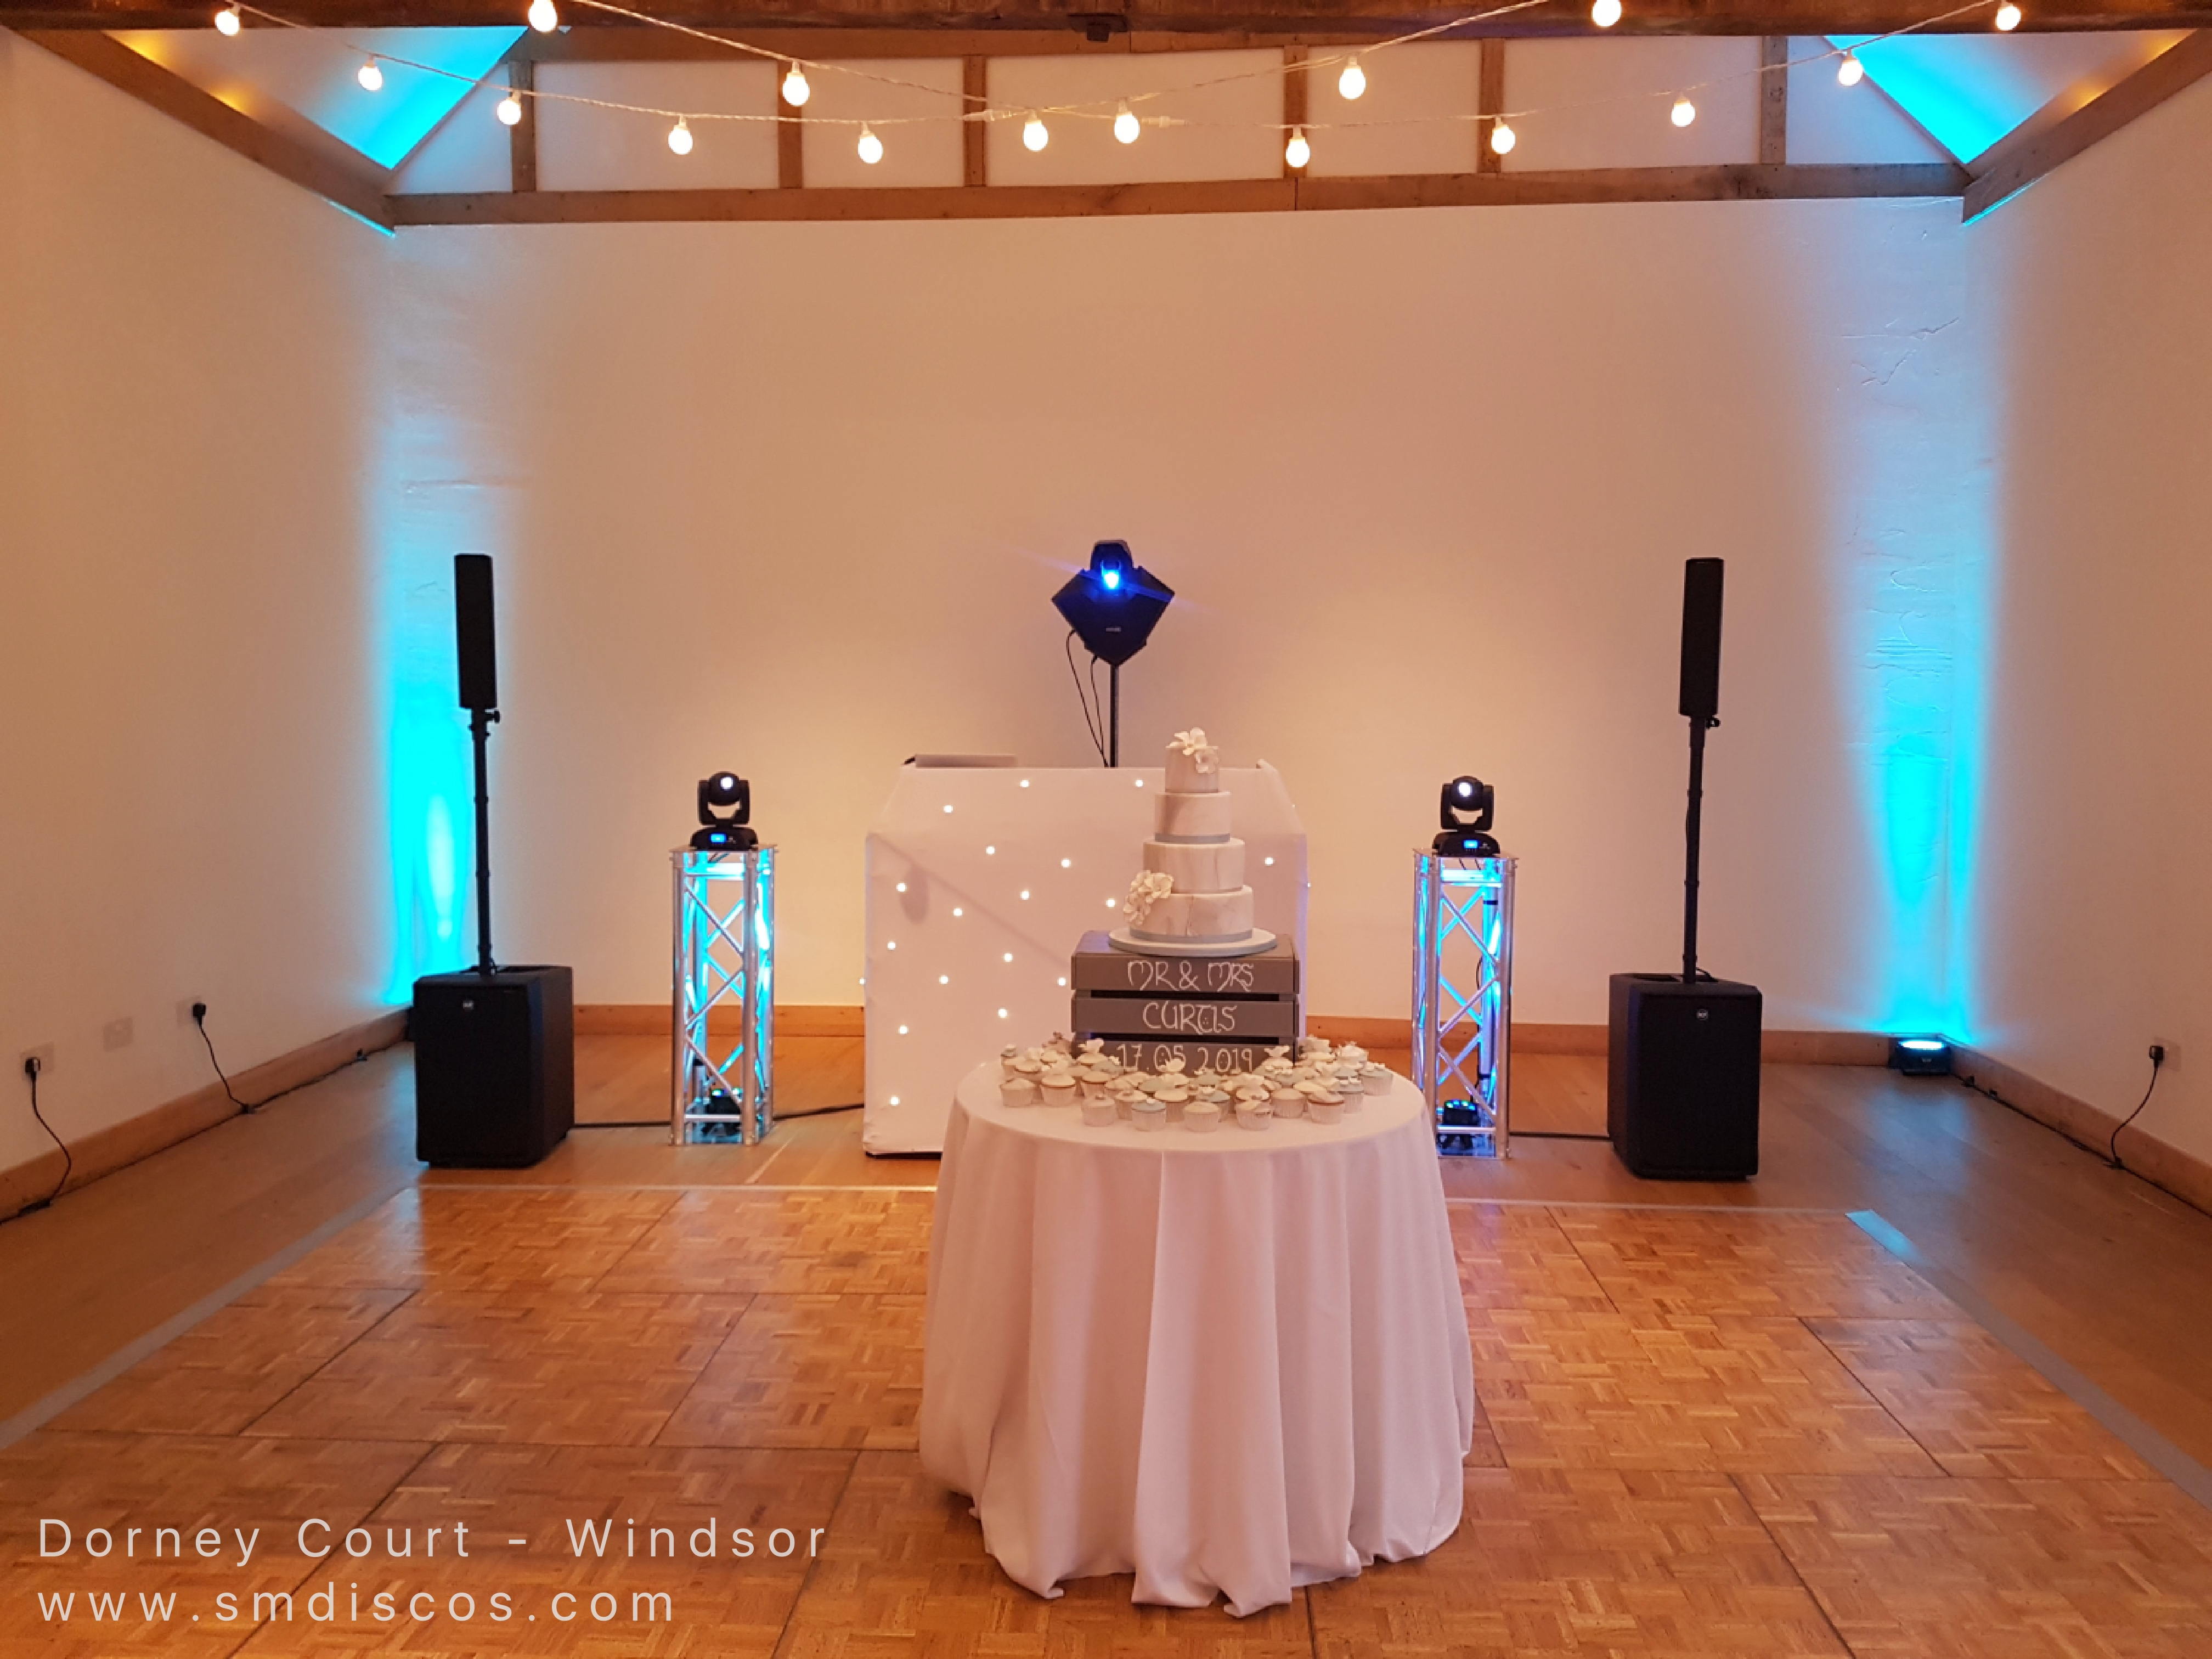 Dorney Court wedding disco